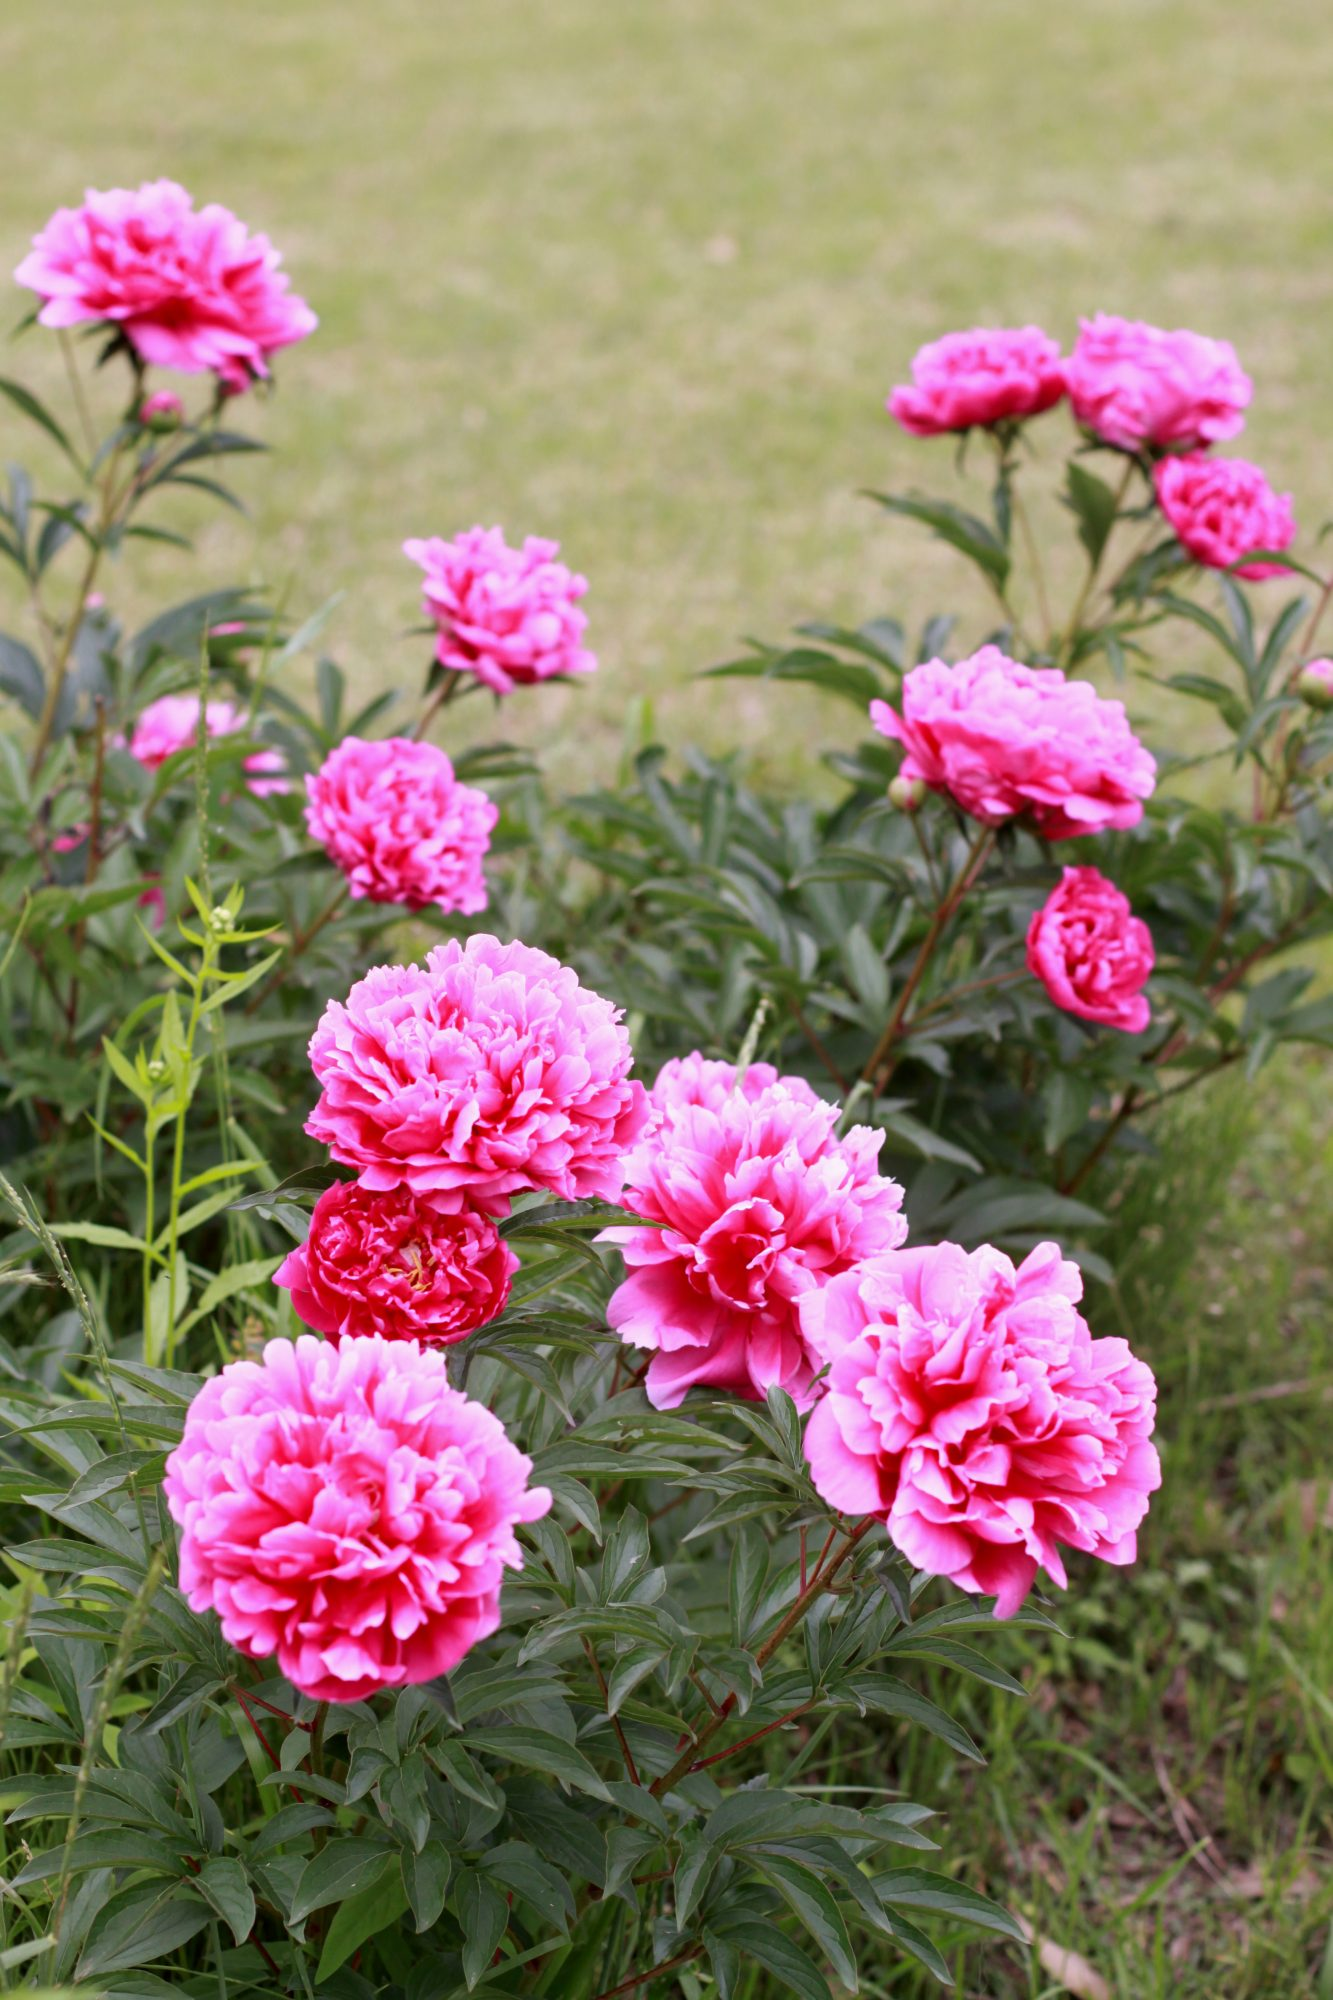 One type of peony is especially suited for the Southern climates